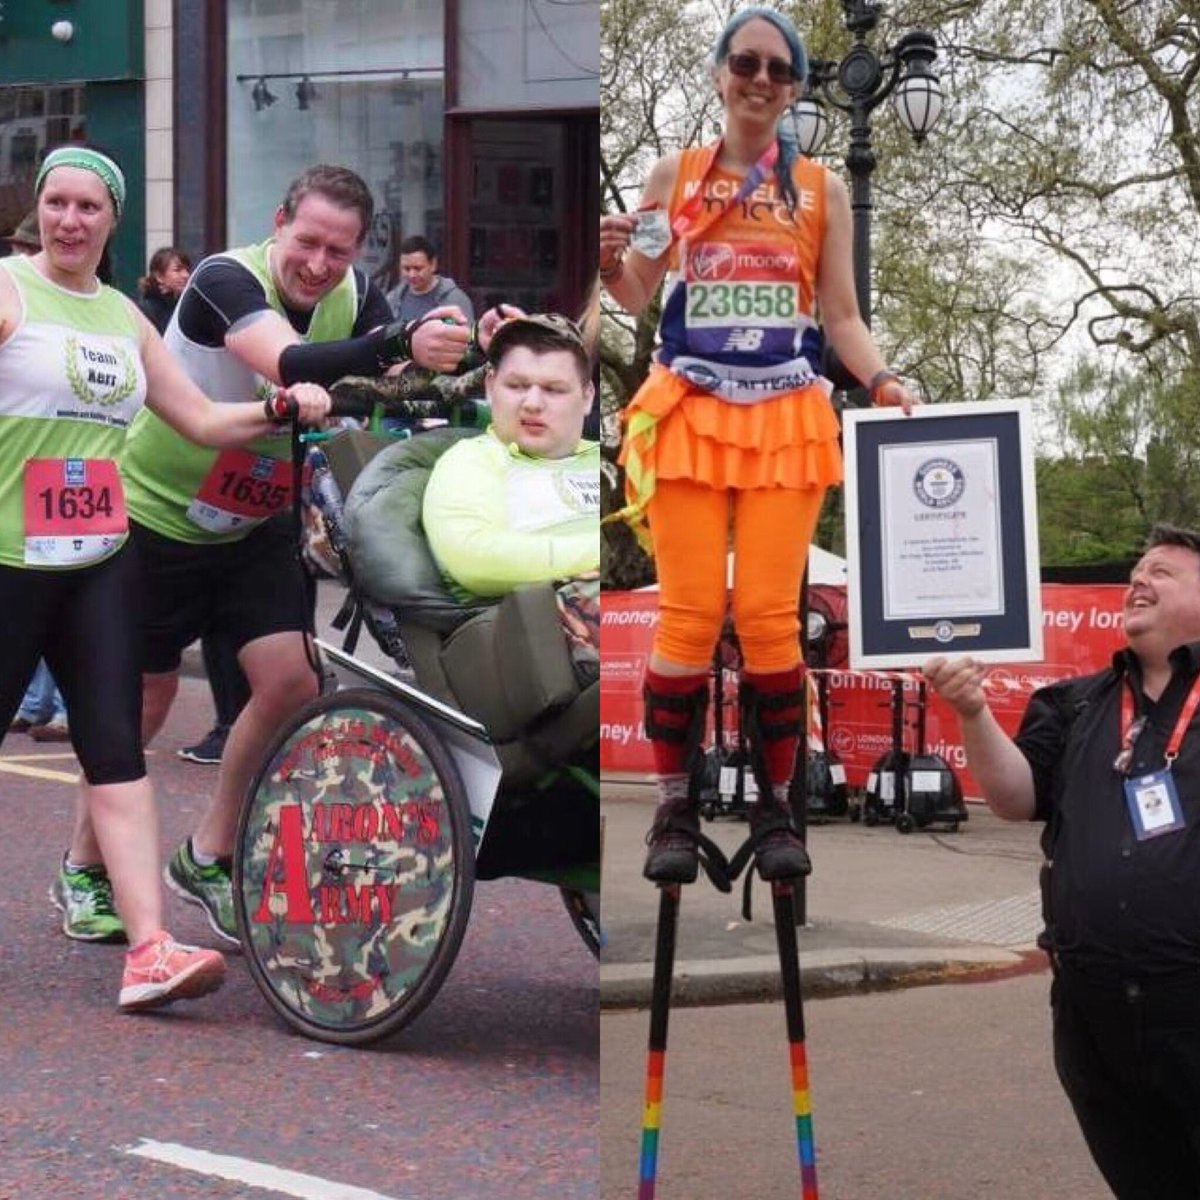 ⁦@TheLastLeg⁩ #isitok that @LondonMarathon think it&#39;s sporting to include a stilts entry but exclude a carer pushing disabled son &#39;because that&#39;s not classed as running!!!!!&#39; #findyourspiritlondon ⁦@richardbranson⁩ ⁦@MayorofLondon⁩ ⁦@TeamKerrNI⁩<br>http://pic.twitter.com/VLvmyBN8l8